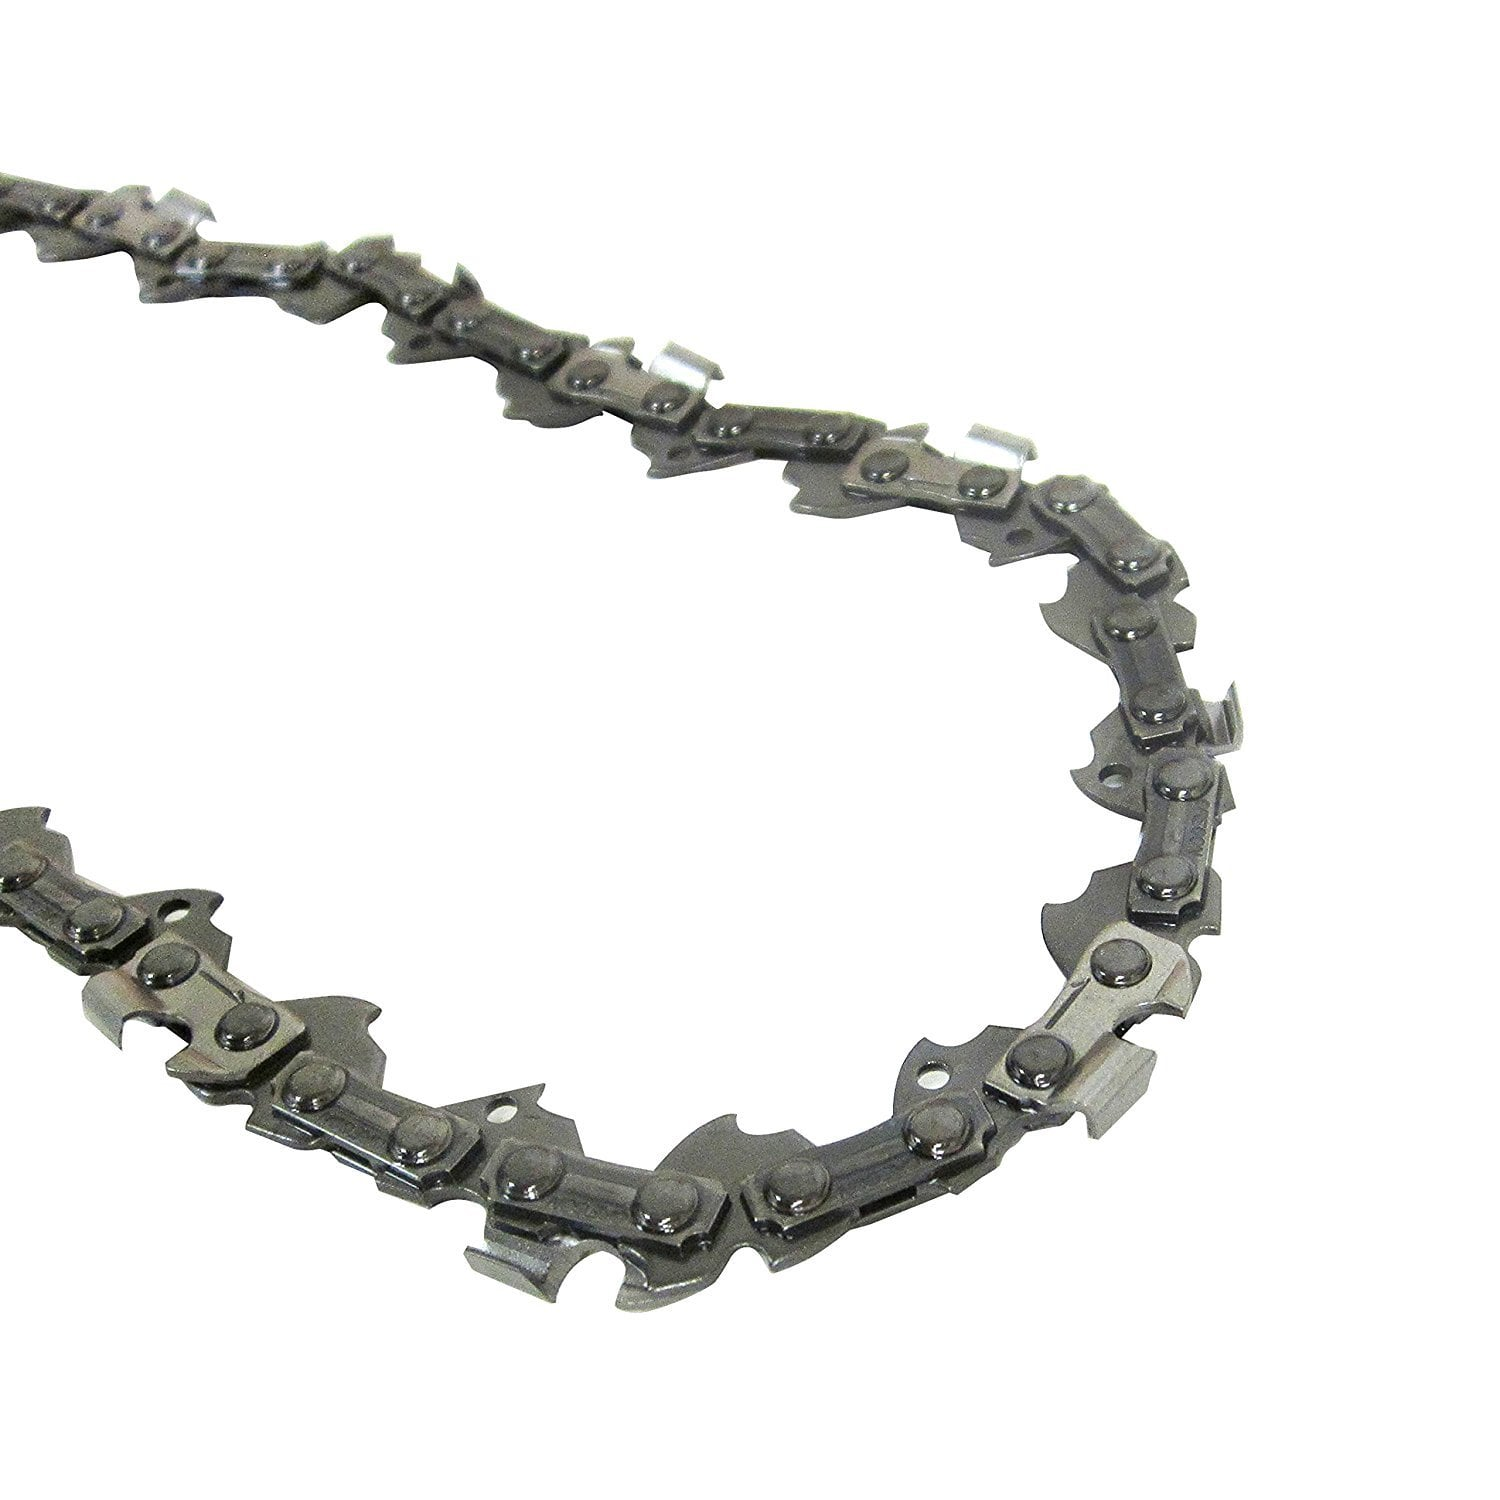 Sun Joe SWJ-10CHAIN 10 Replacement Semi-Chisel Chain for SWJ803ESWJ807E Pole Chain Saws